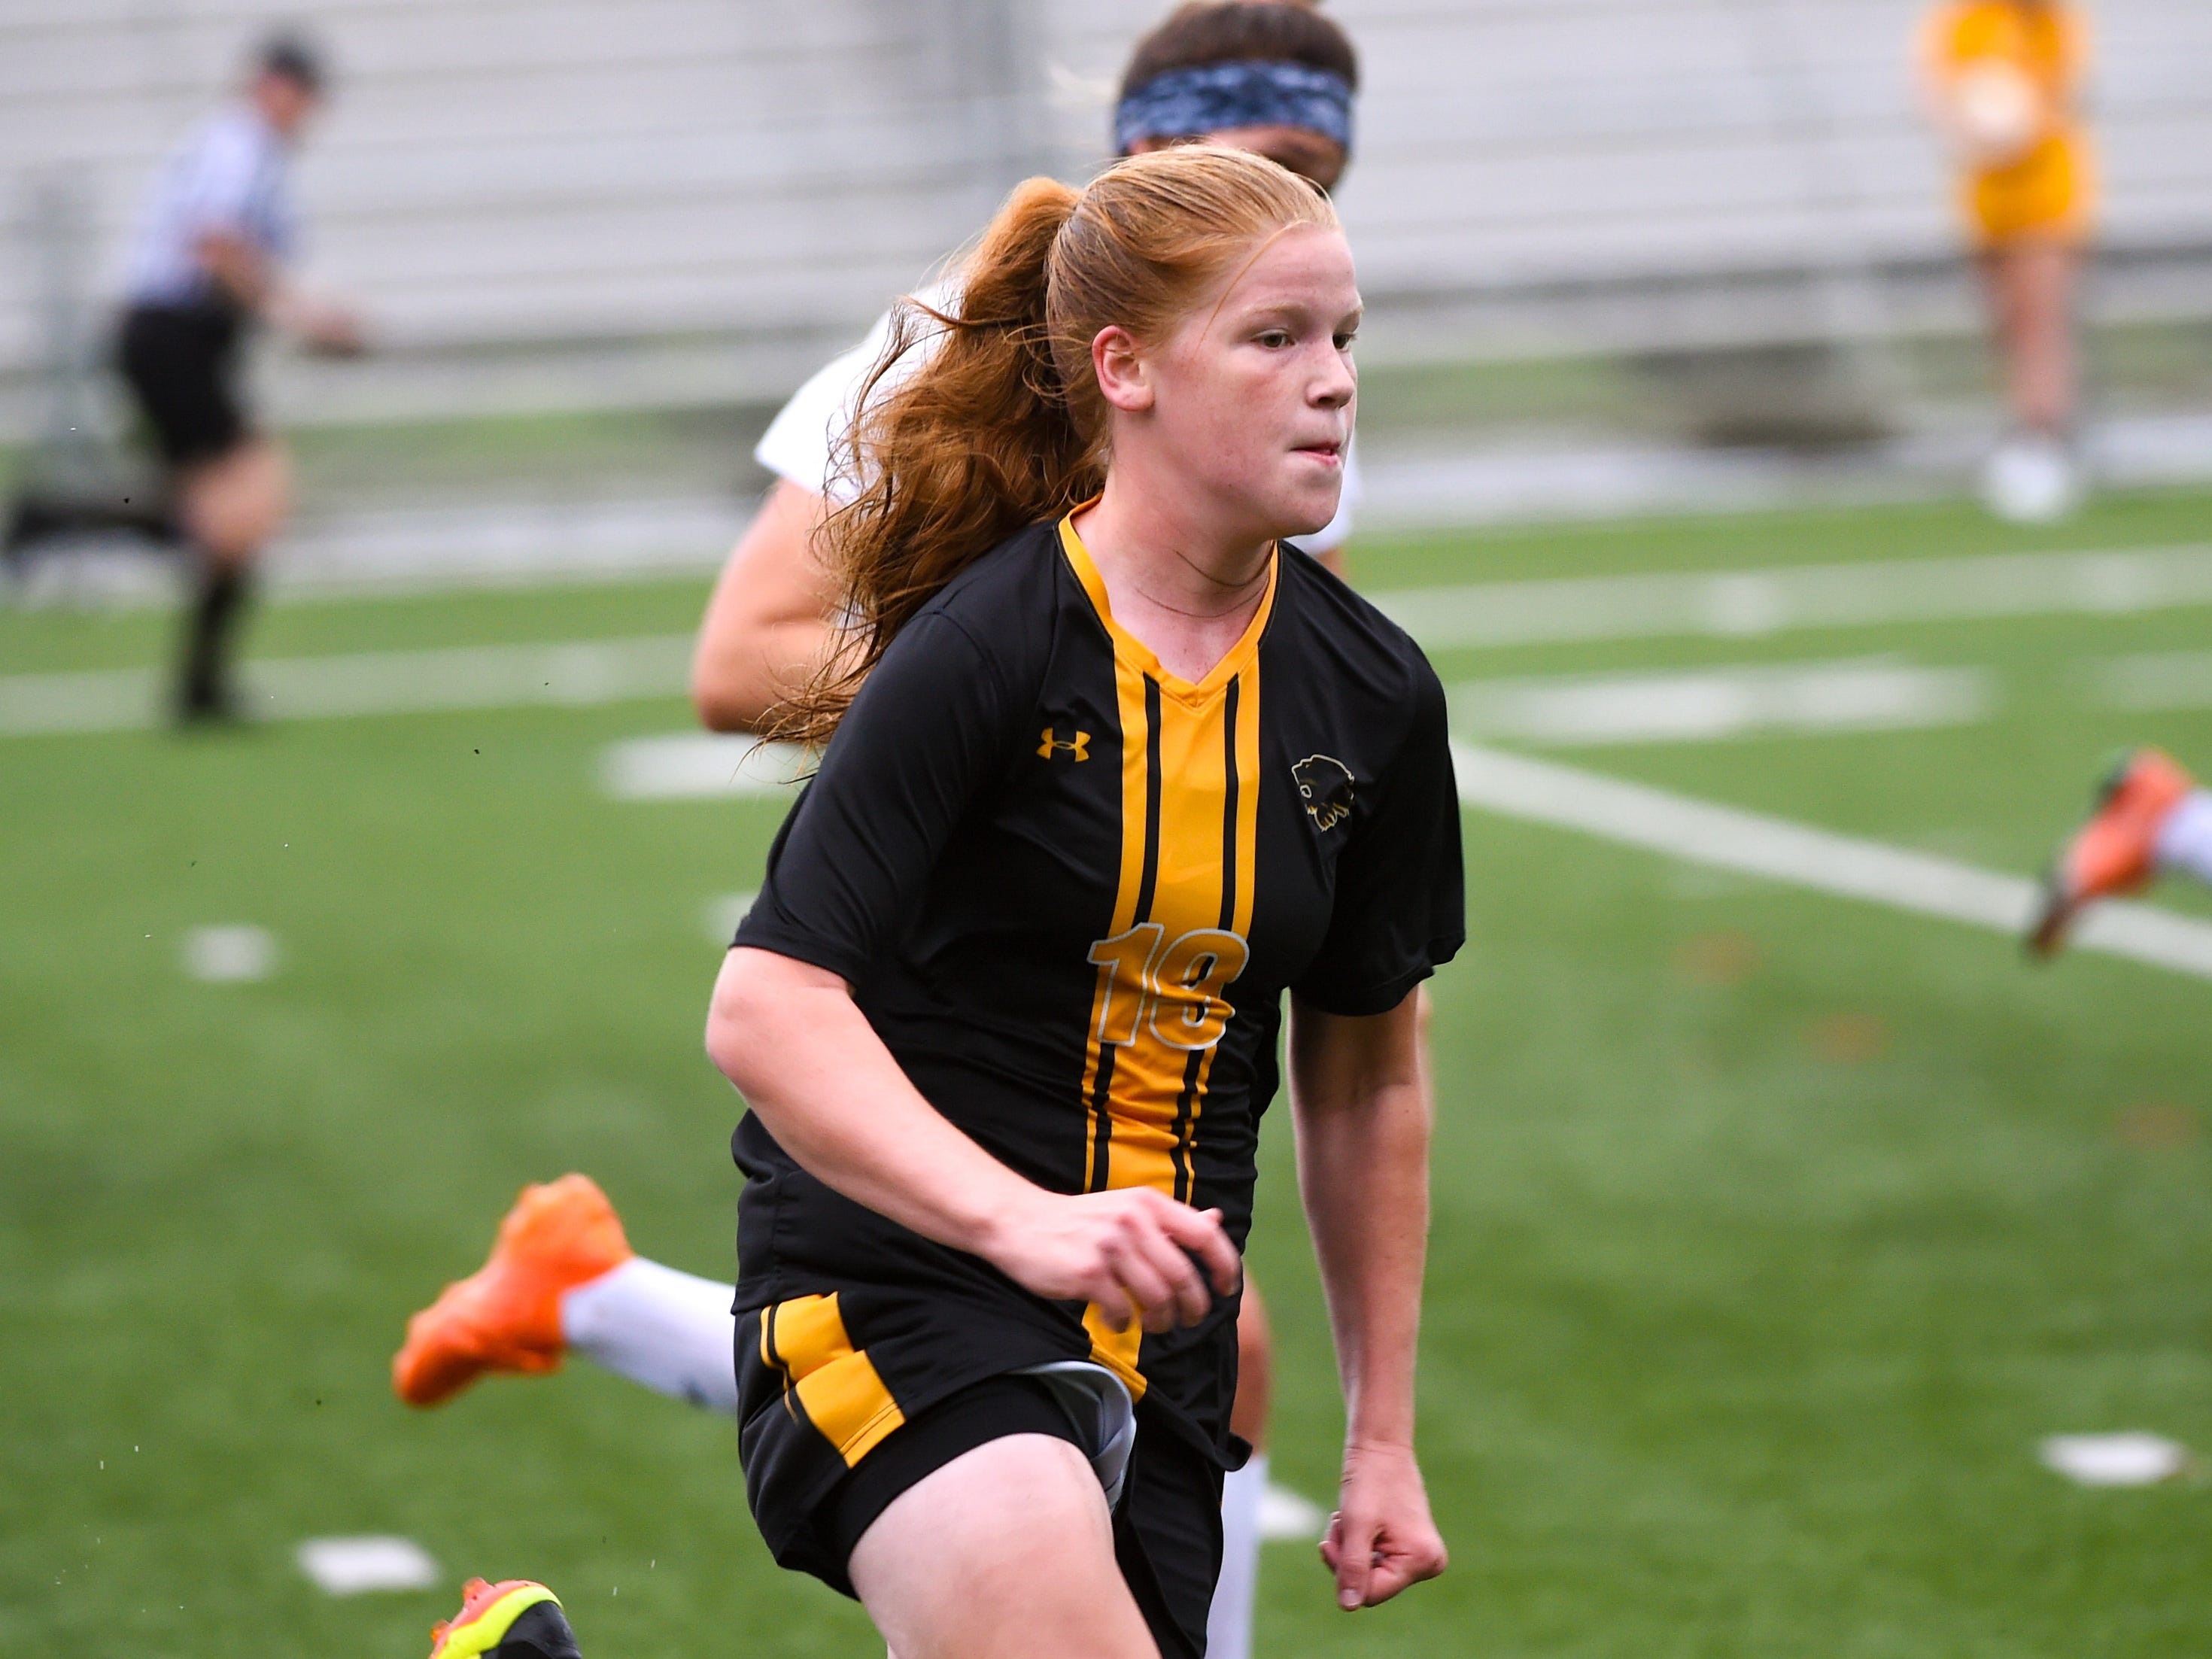 Anna Gatchell (19) of Red Lion chases down the ball, October 11, 2018. The Lady Lions beat the Wildcats 4-0.